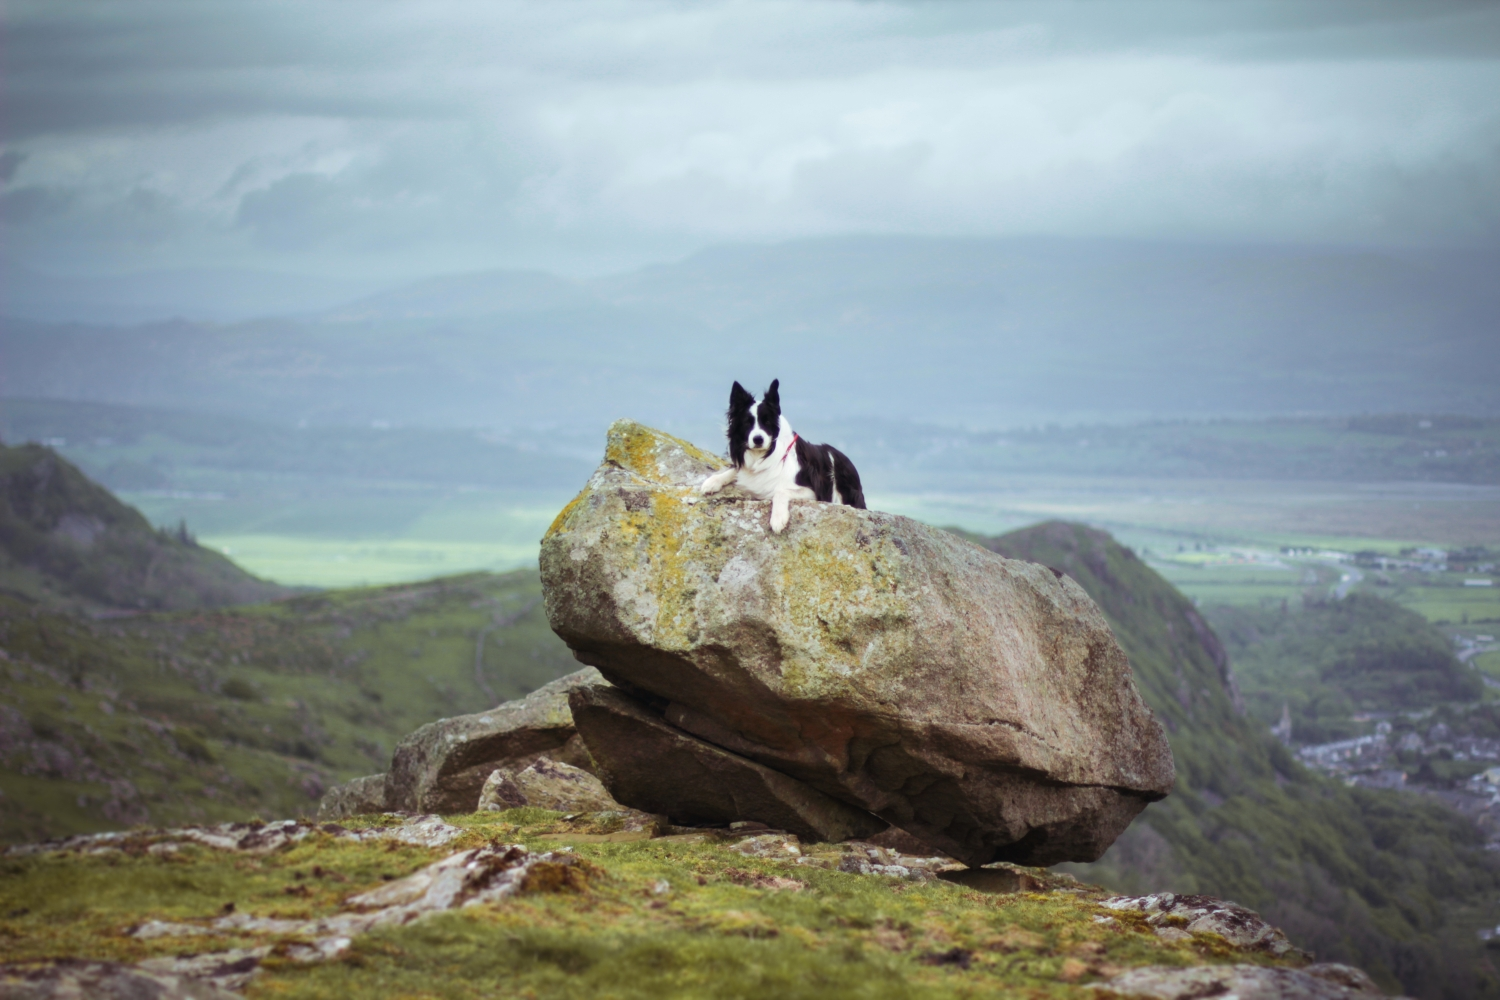 Samson, chilling atop a hill-top rock in Wales.